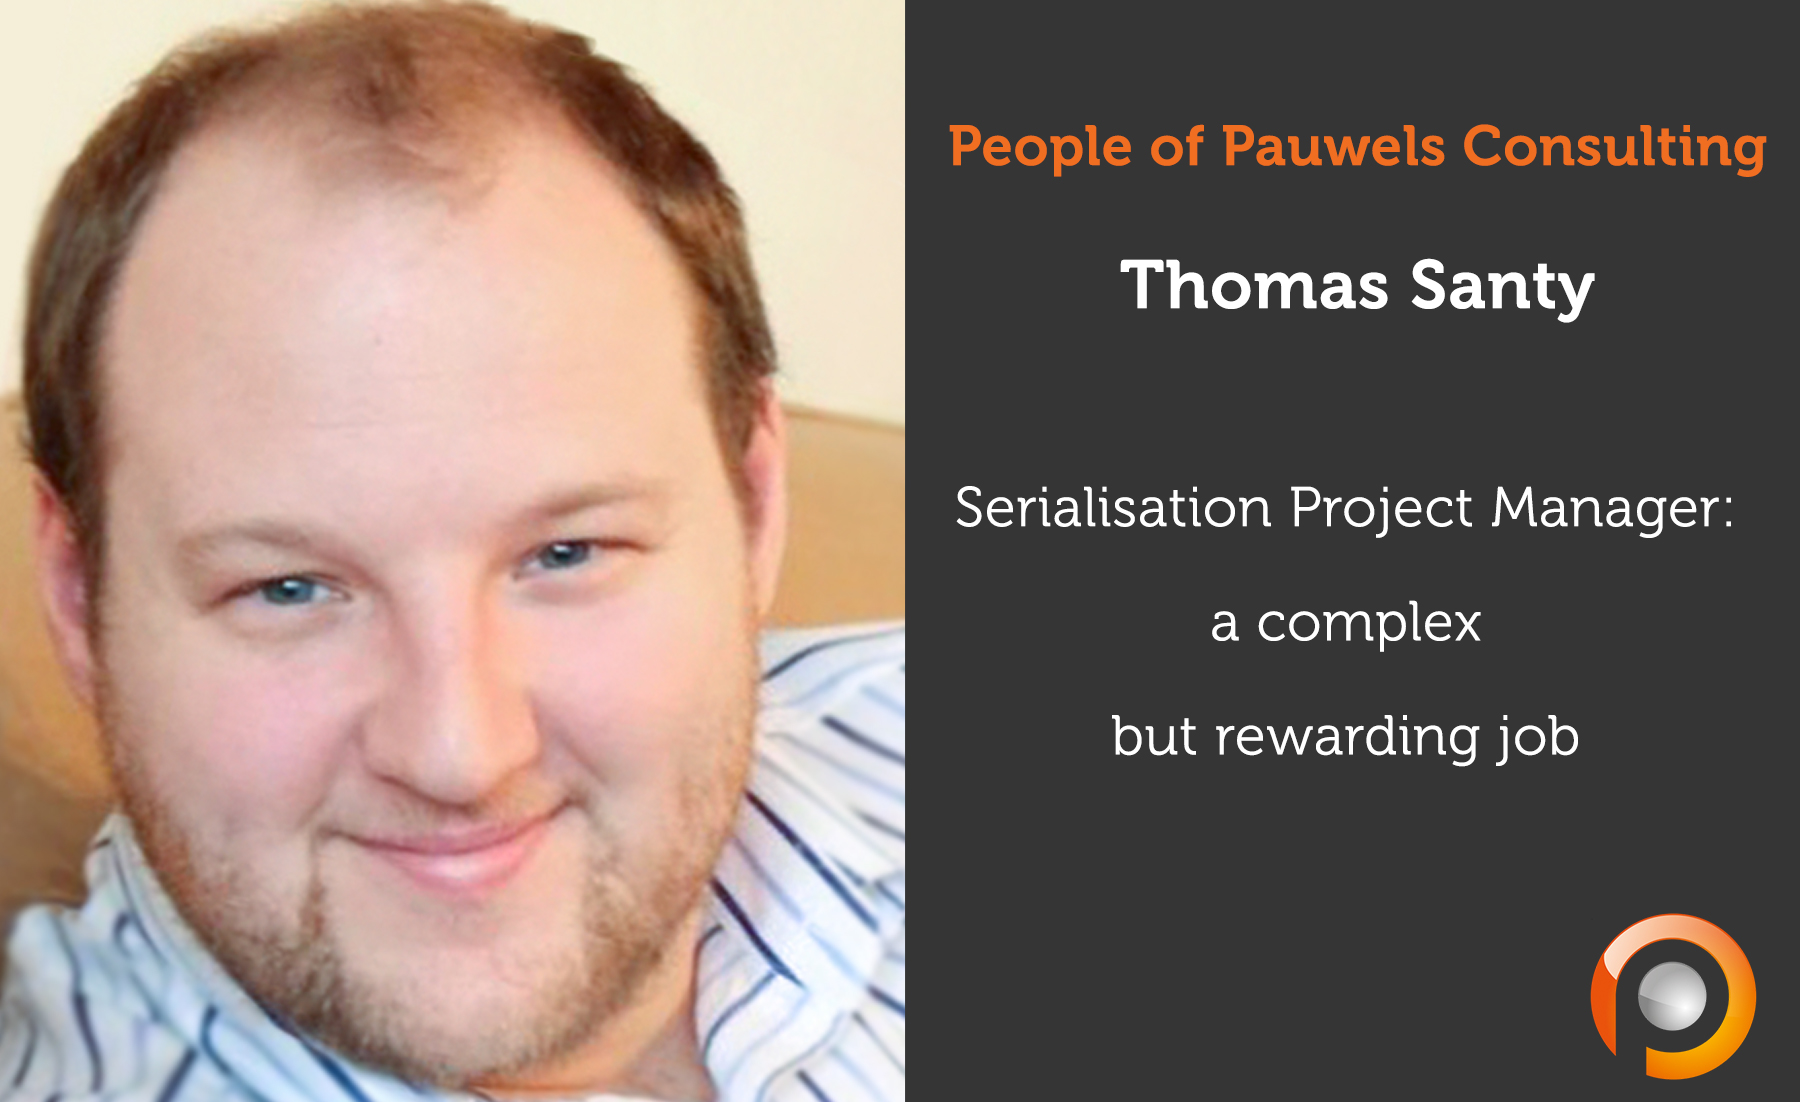 people-of-pauwels-consulting-thomas-santy-en-li